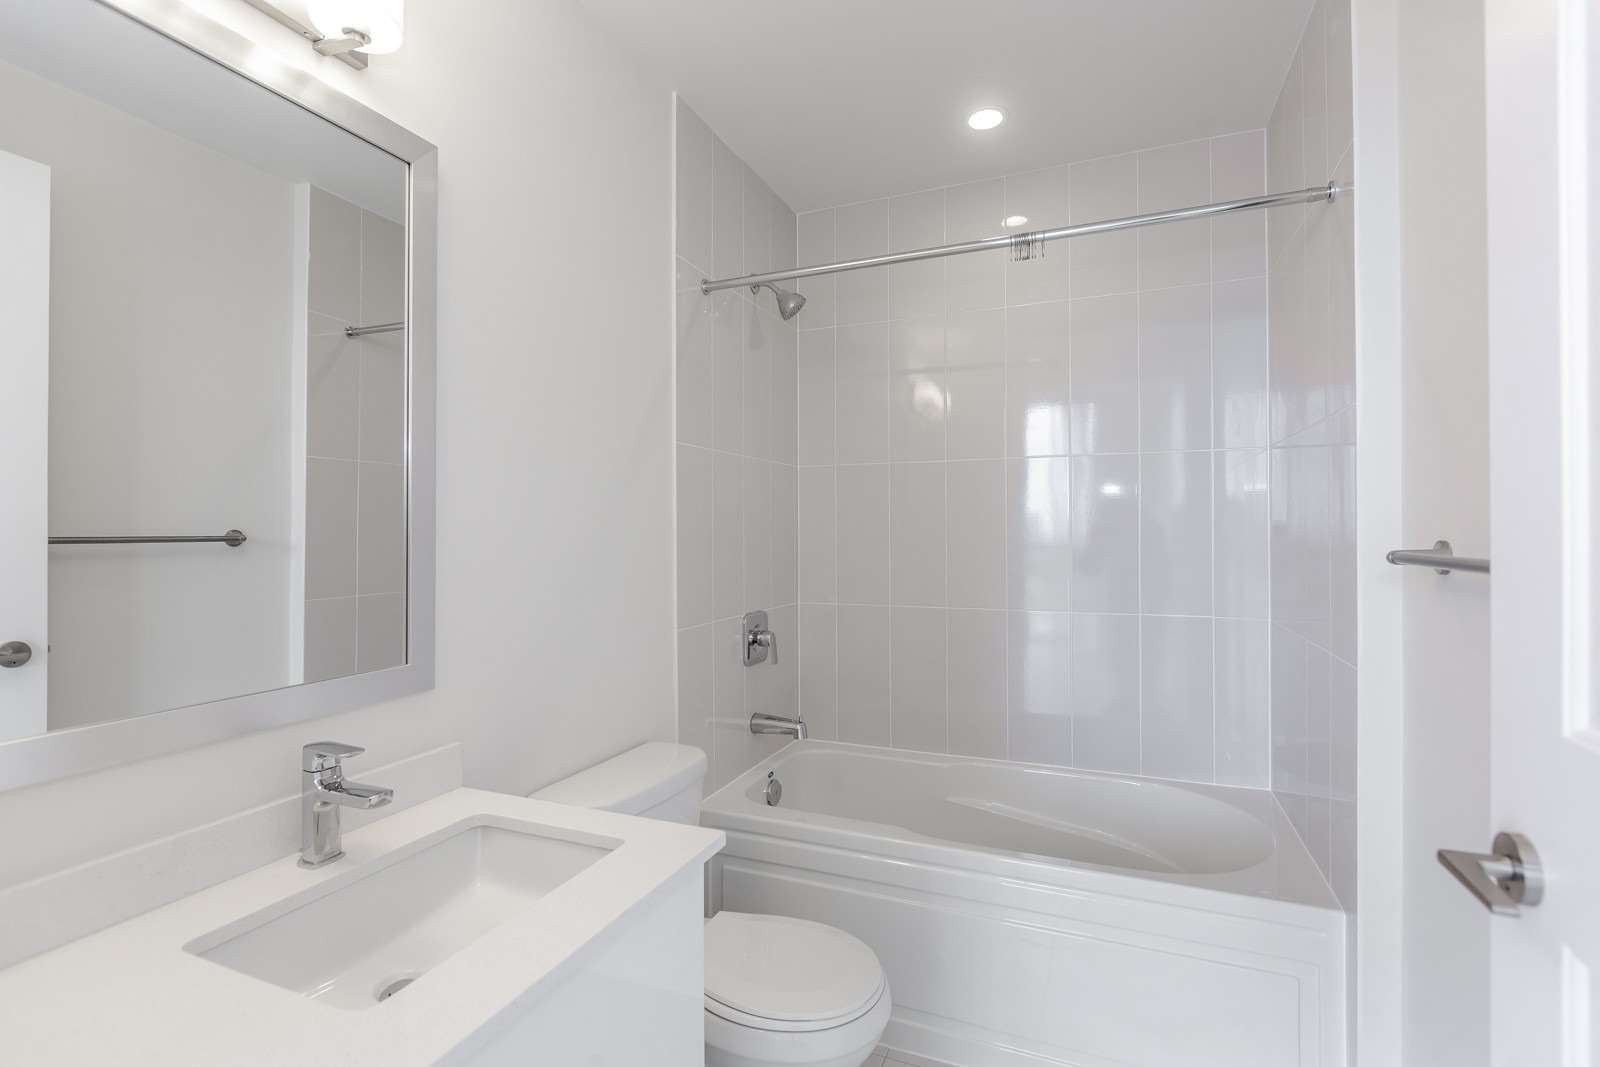 Photo 15: Photos: 1204 5025 Four Springs Avenue in Mississauga: Hurontario Condo for lease : MLS®# W4582092